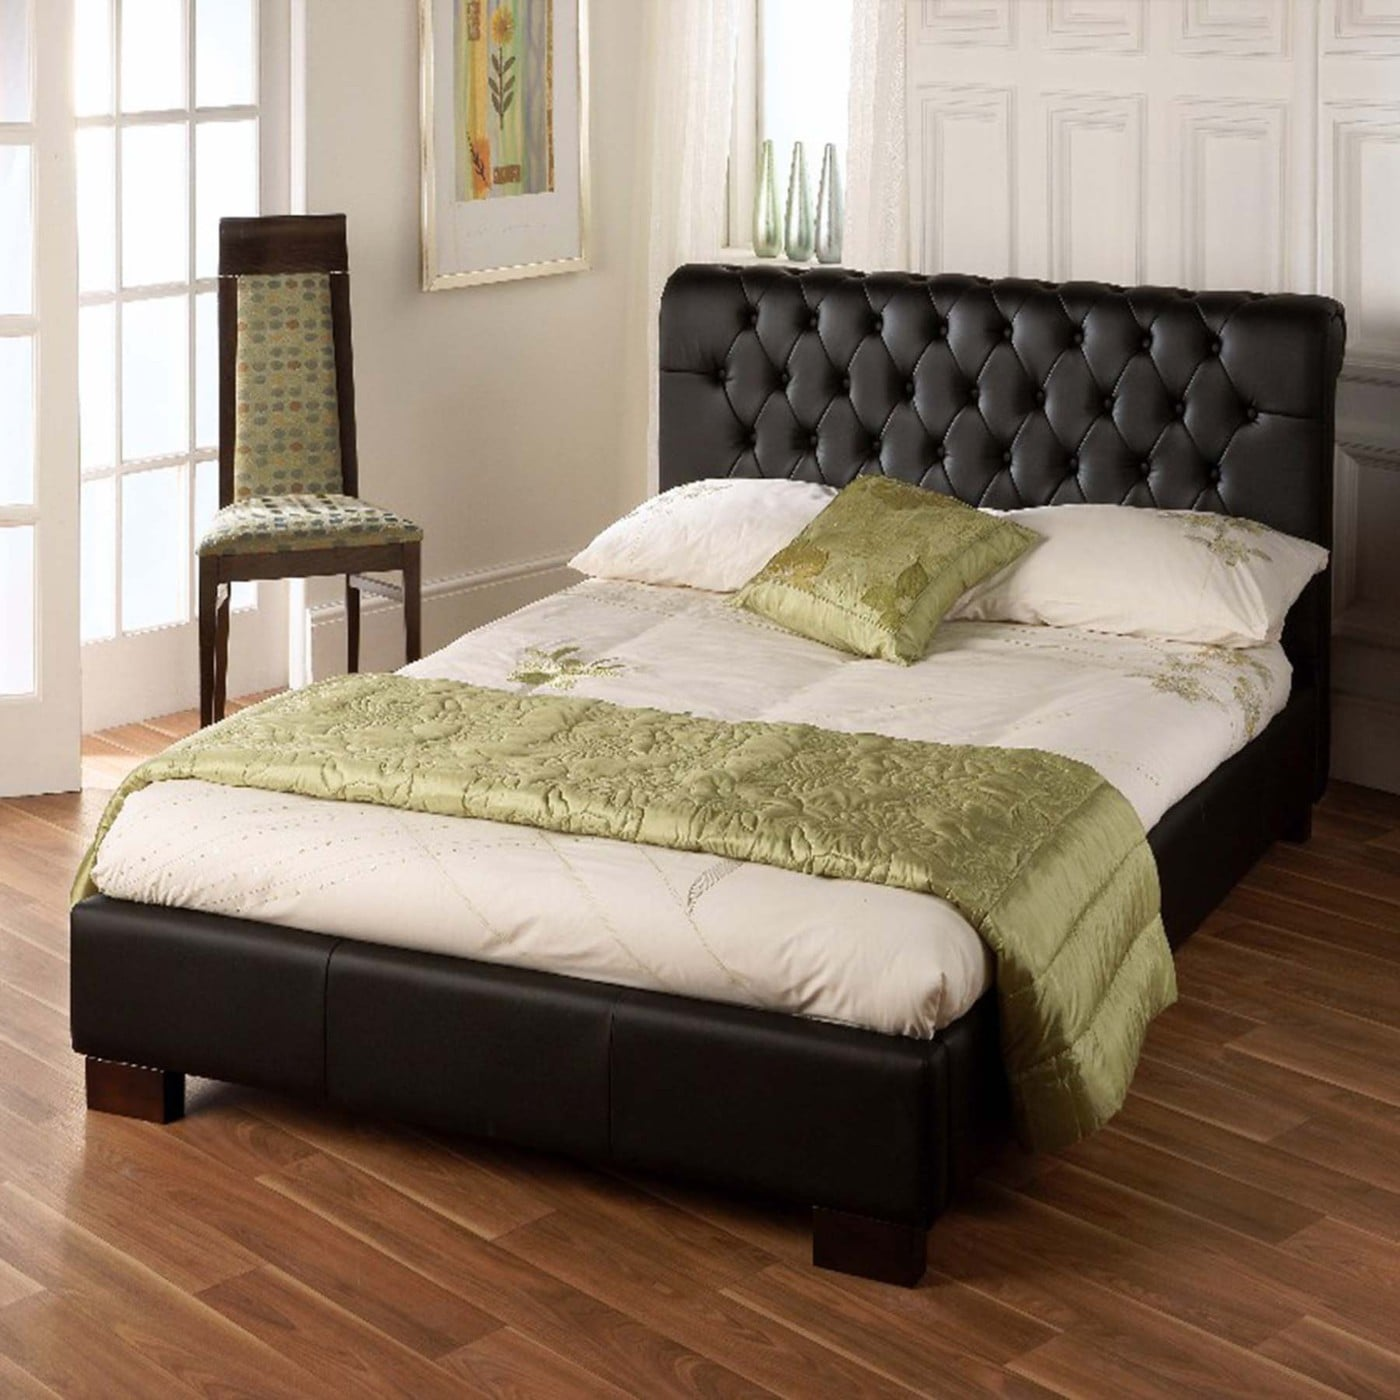 Limelight Aries Black Faux Leather Double Bed Frame - Dublin Beds